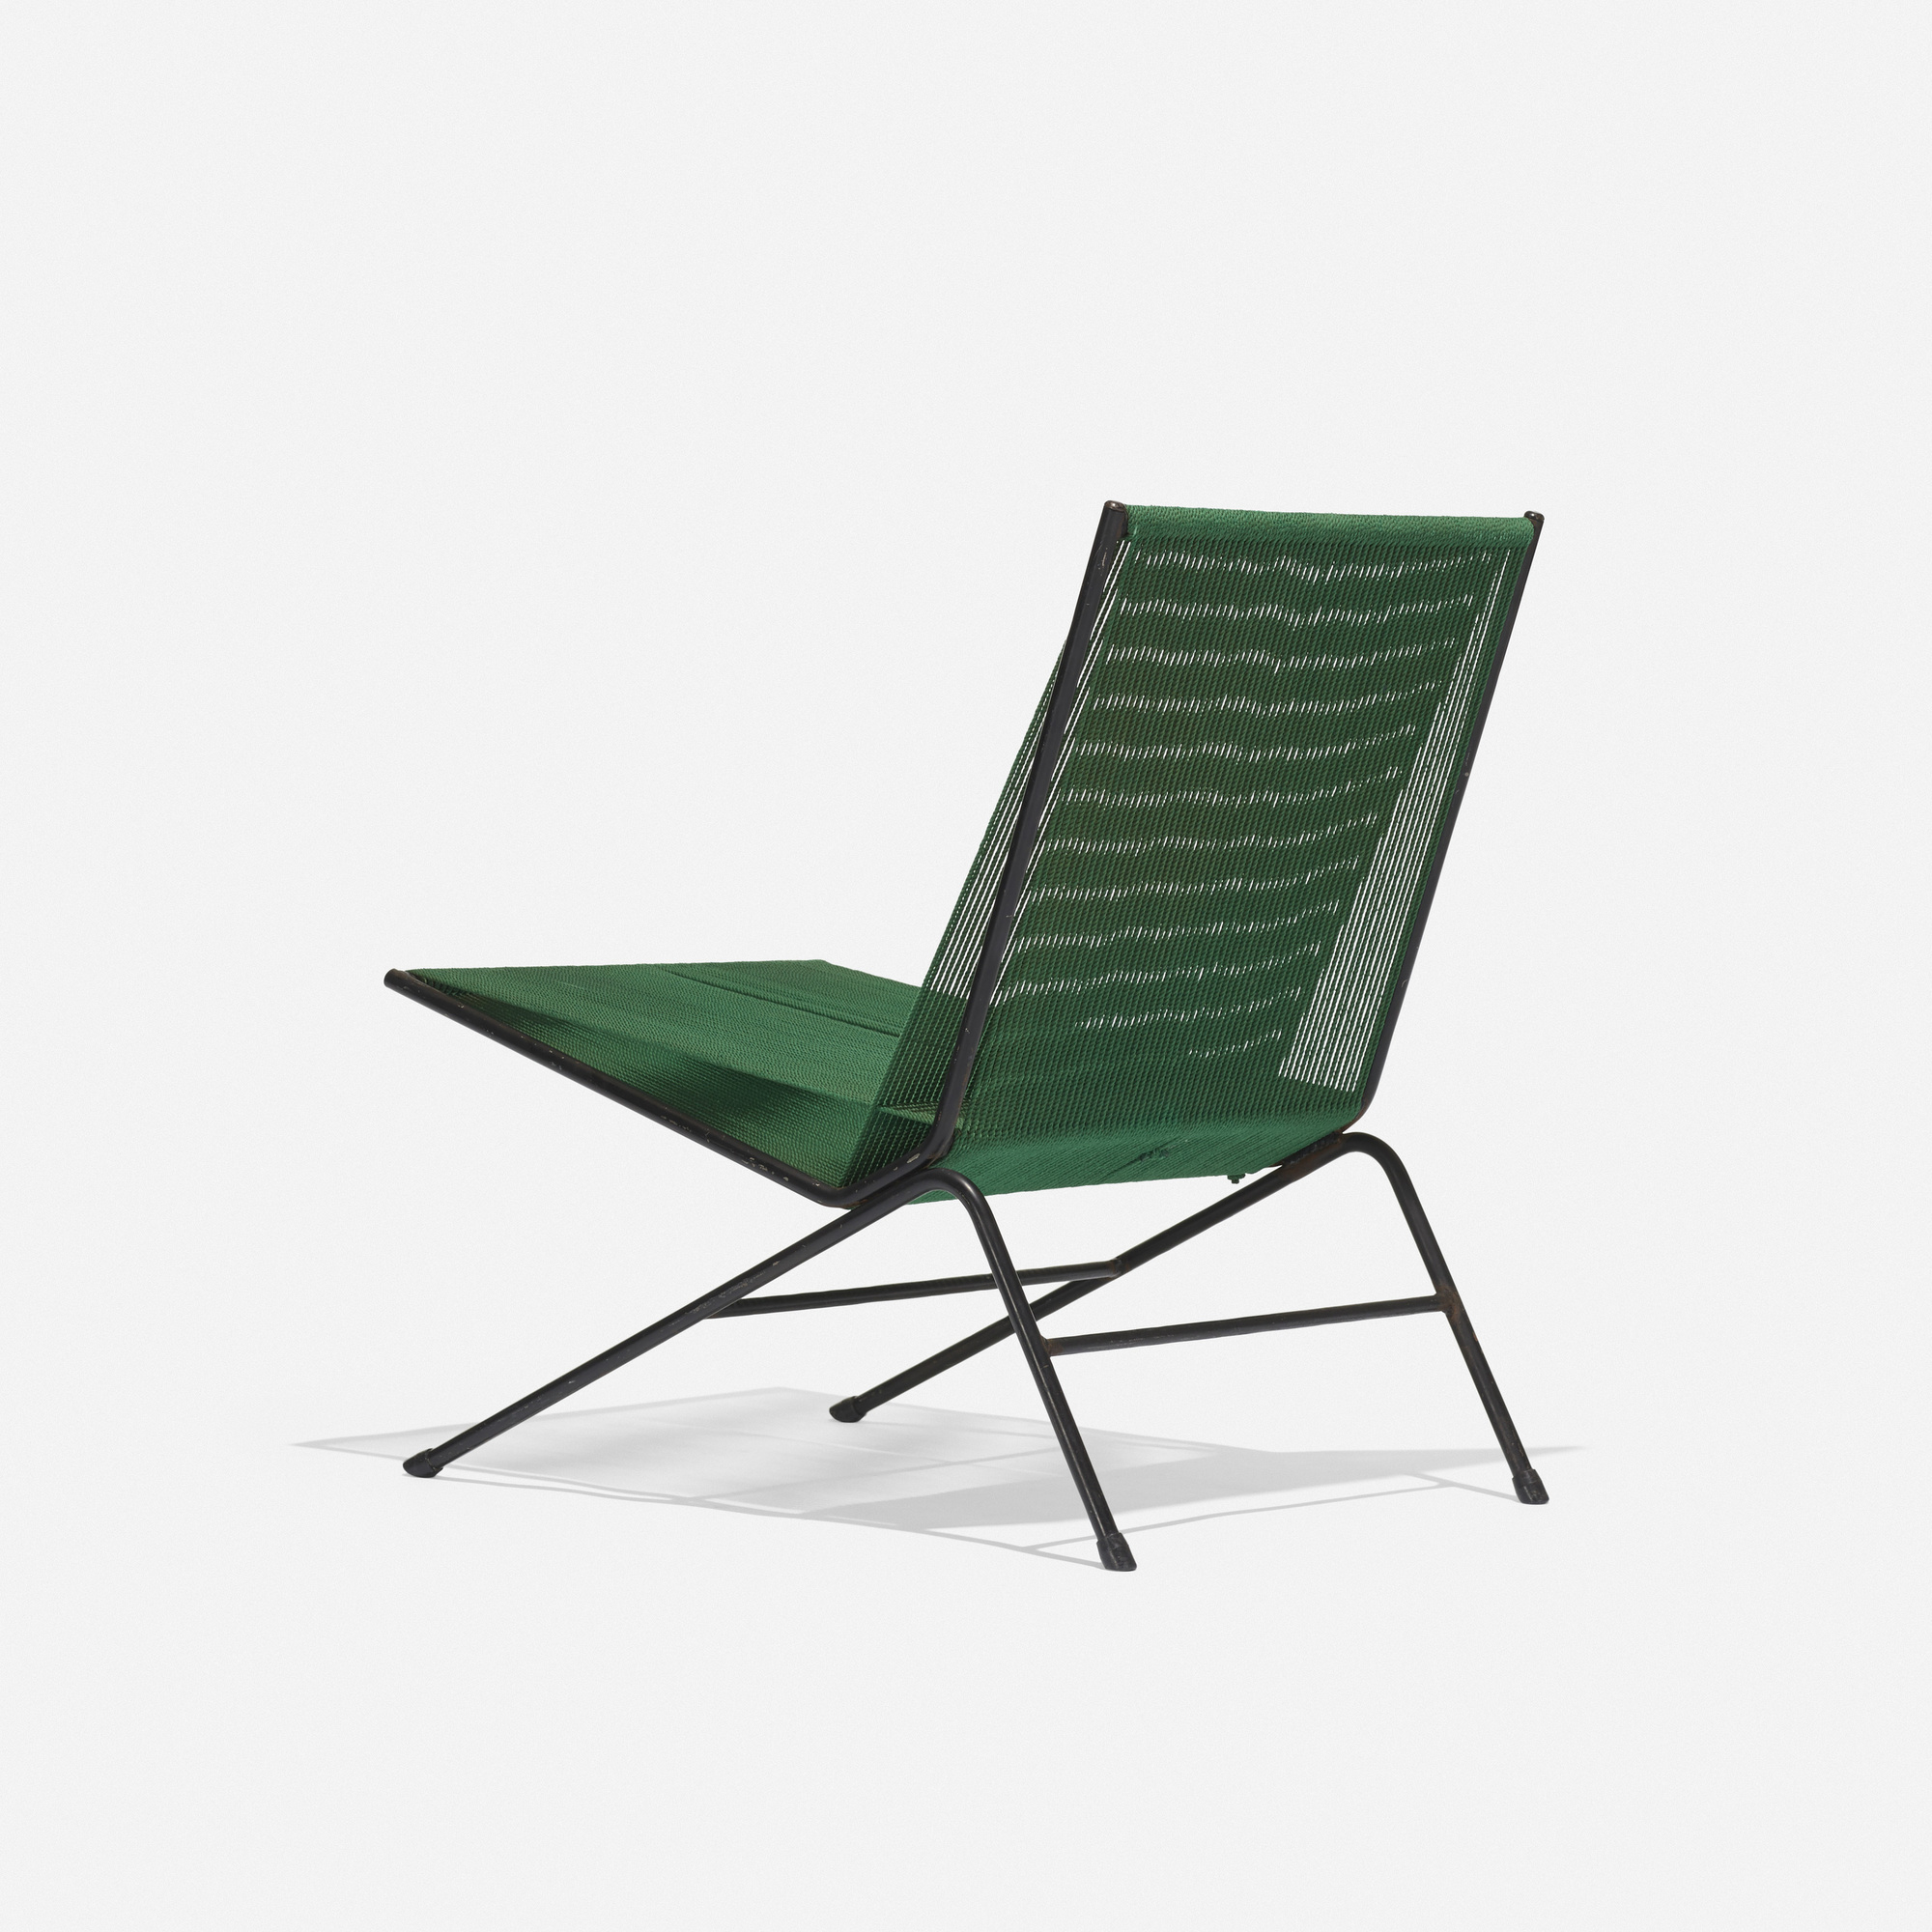 215: Allan Gould / lounge chair (2 of 3)